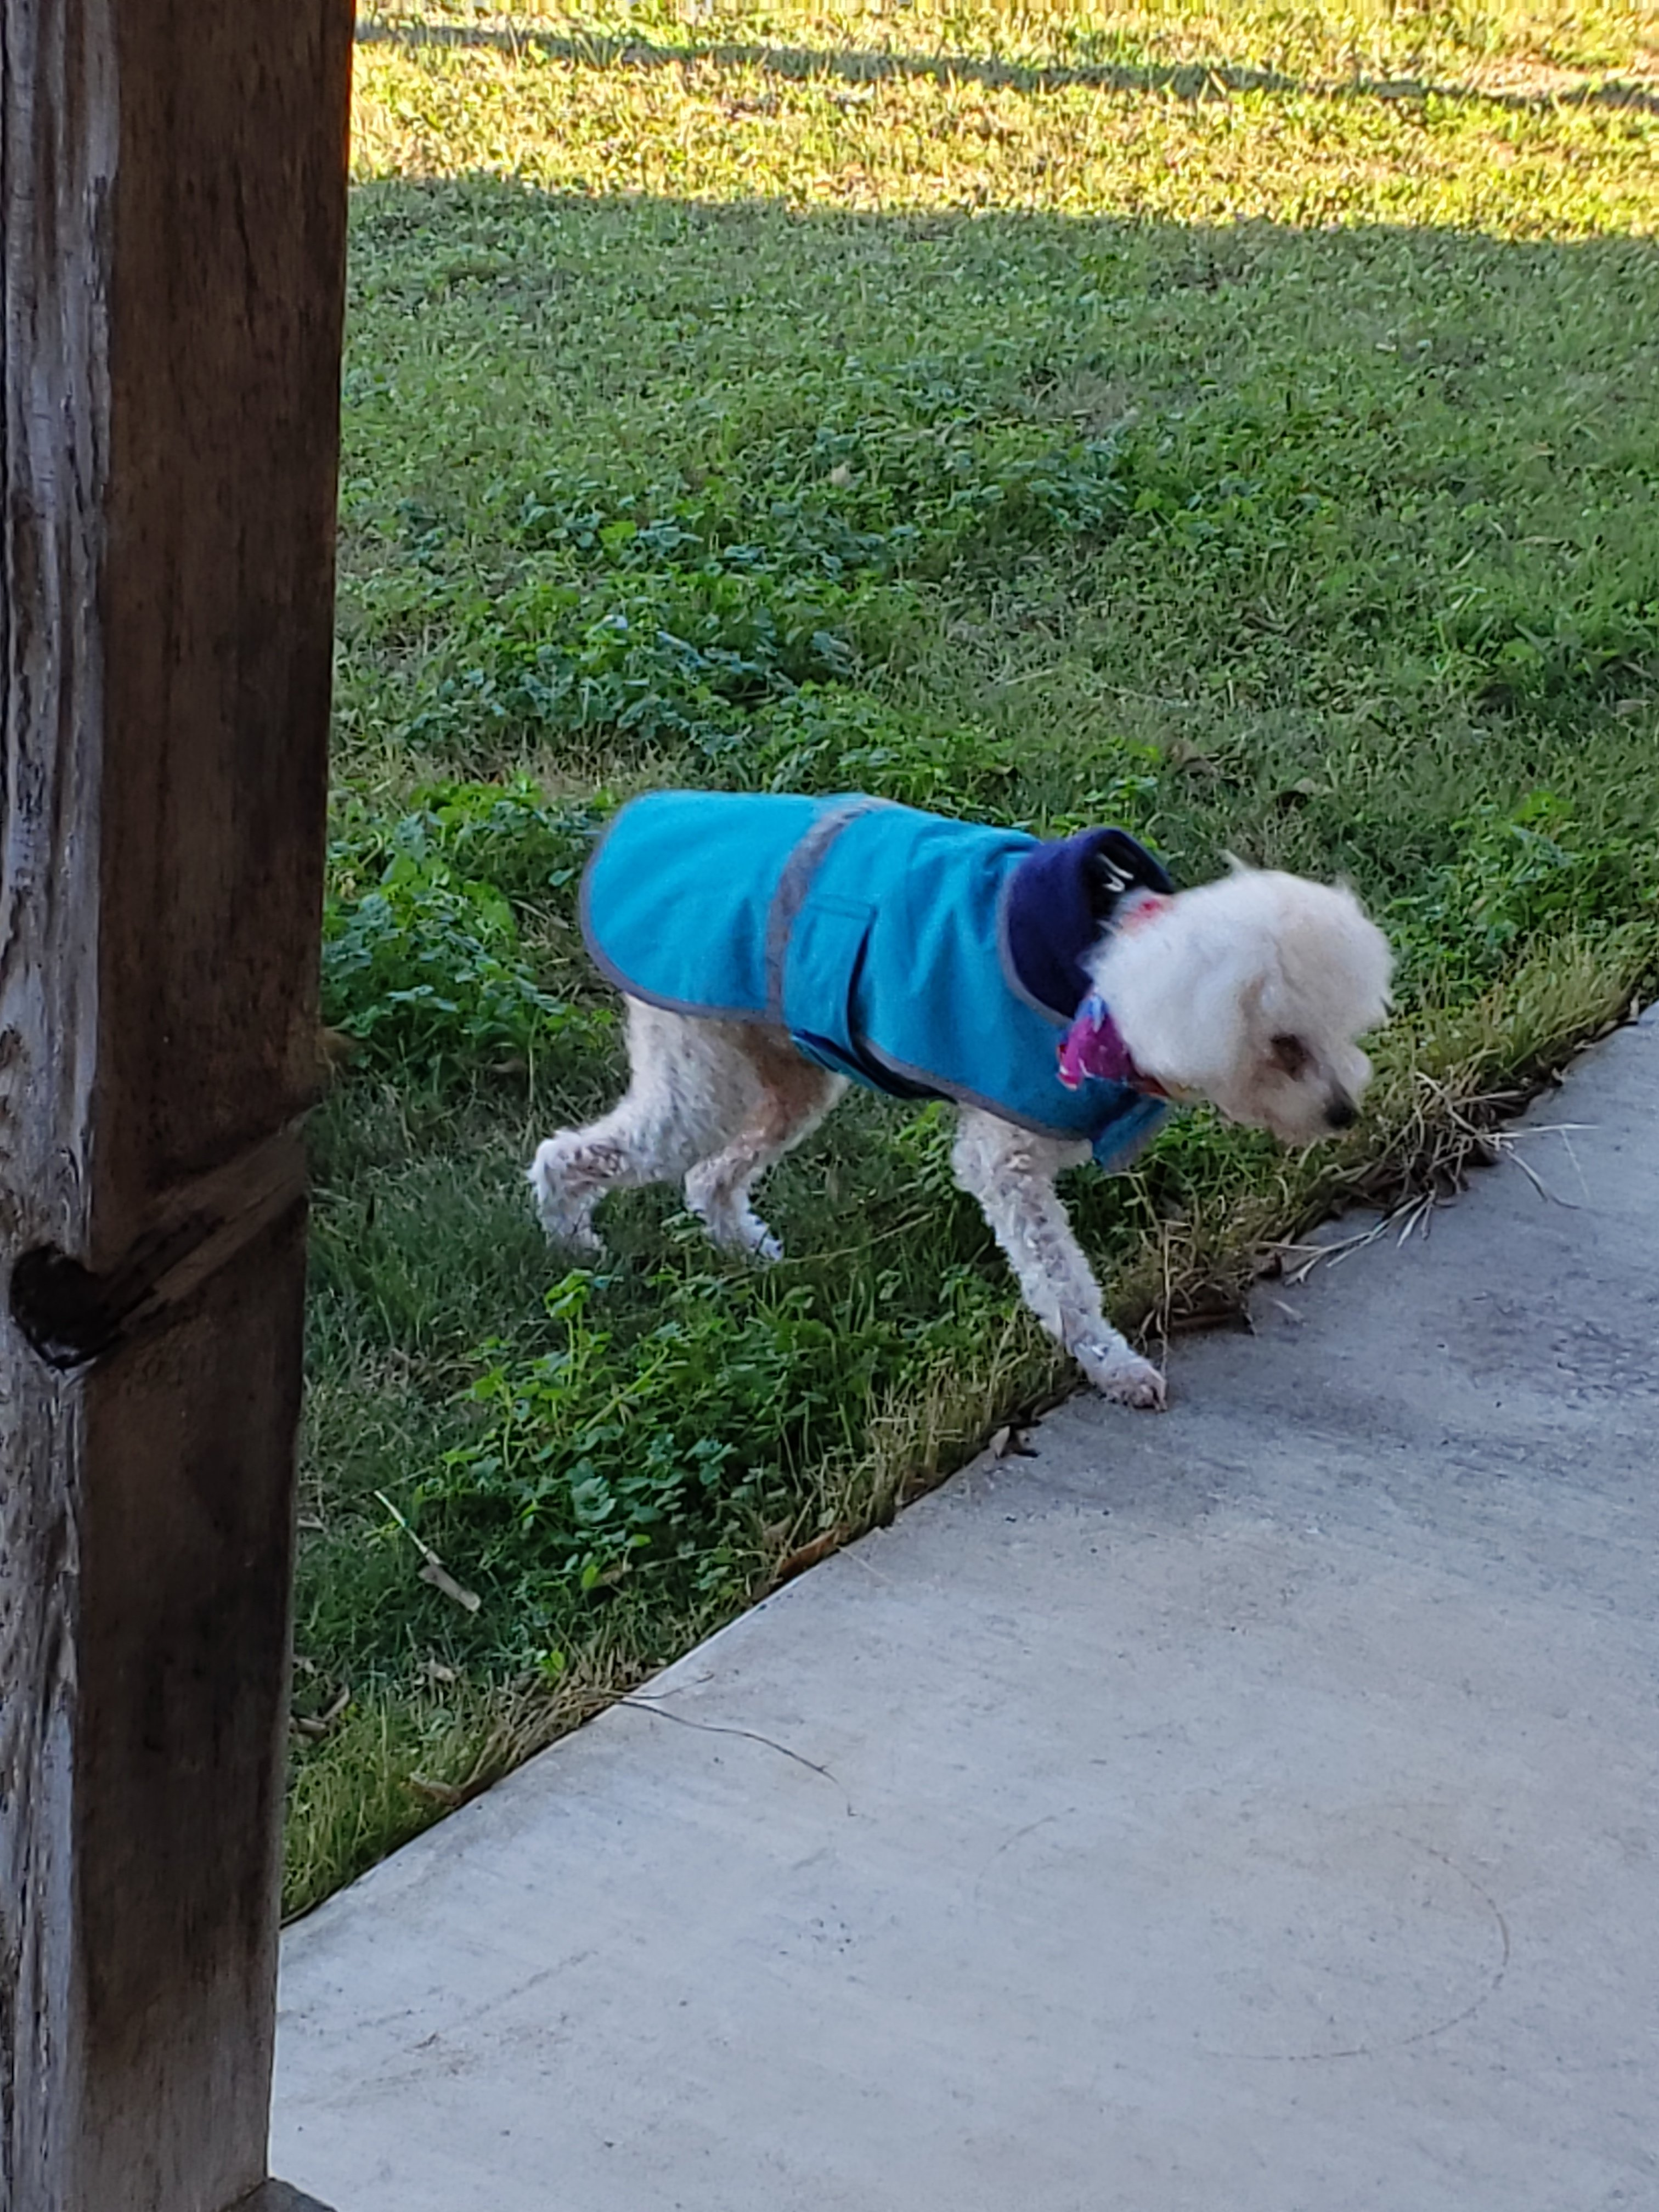 Maddie in her new blue coat.